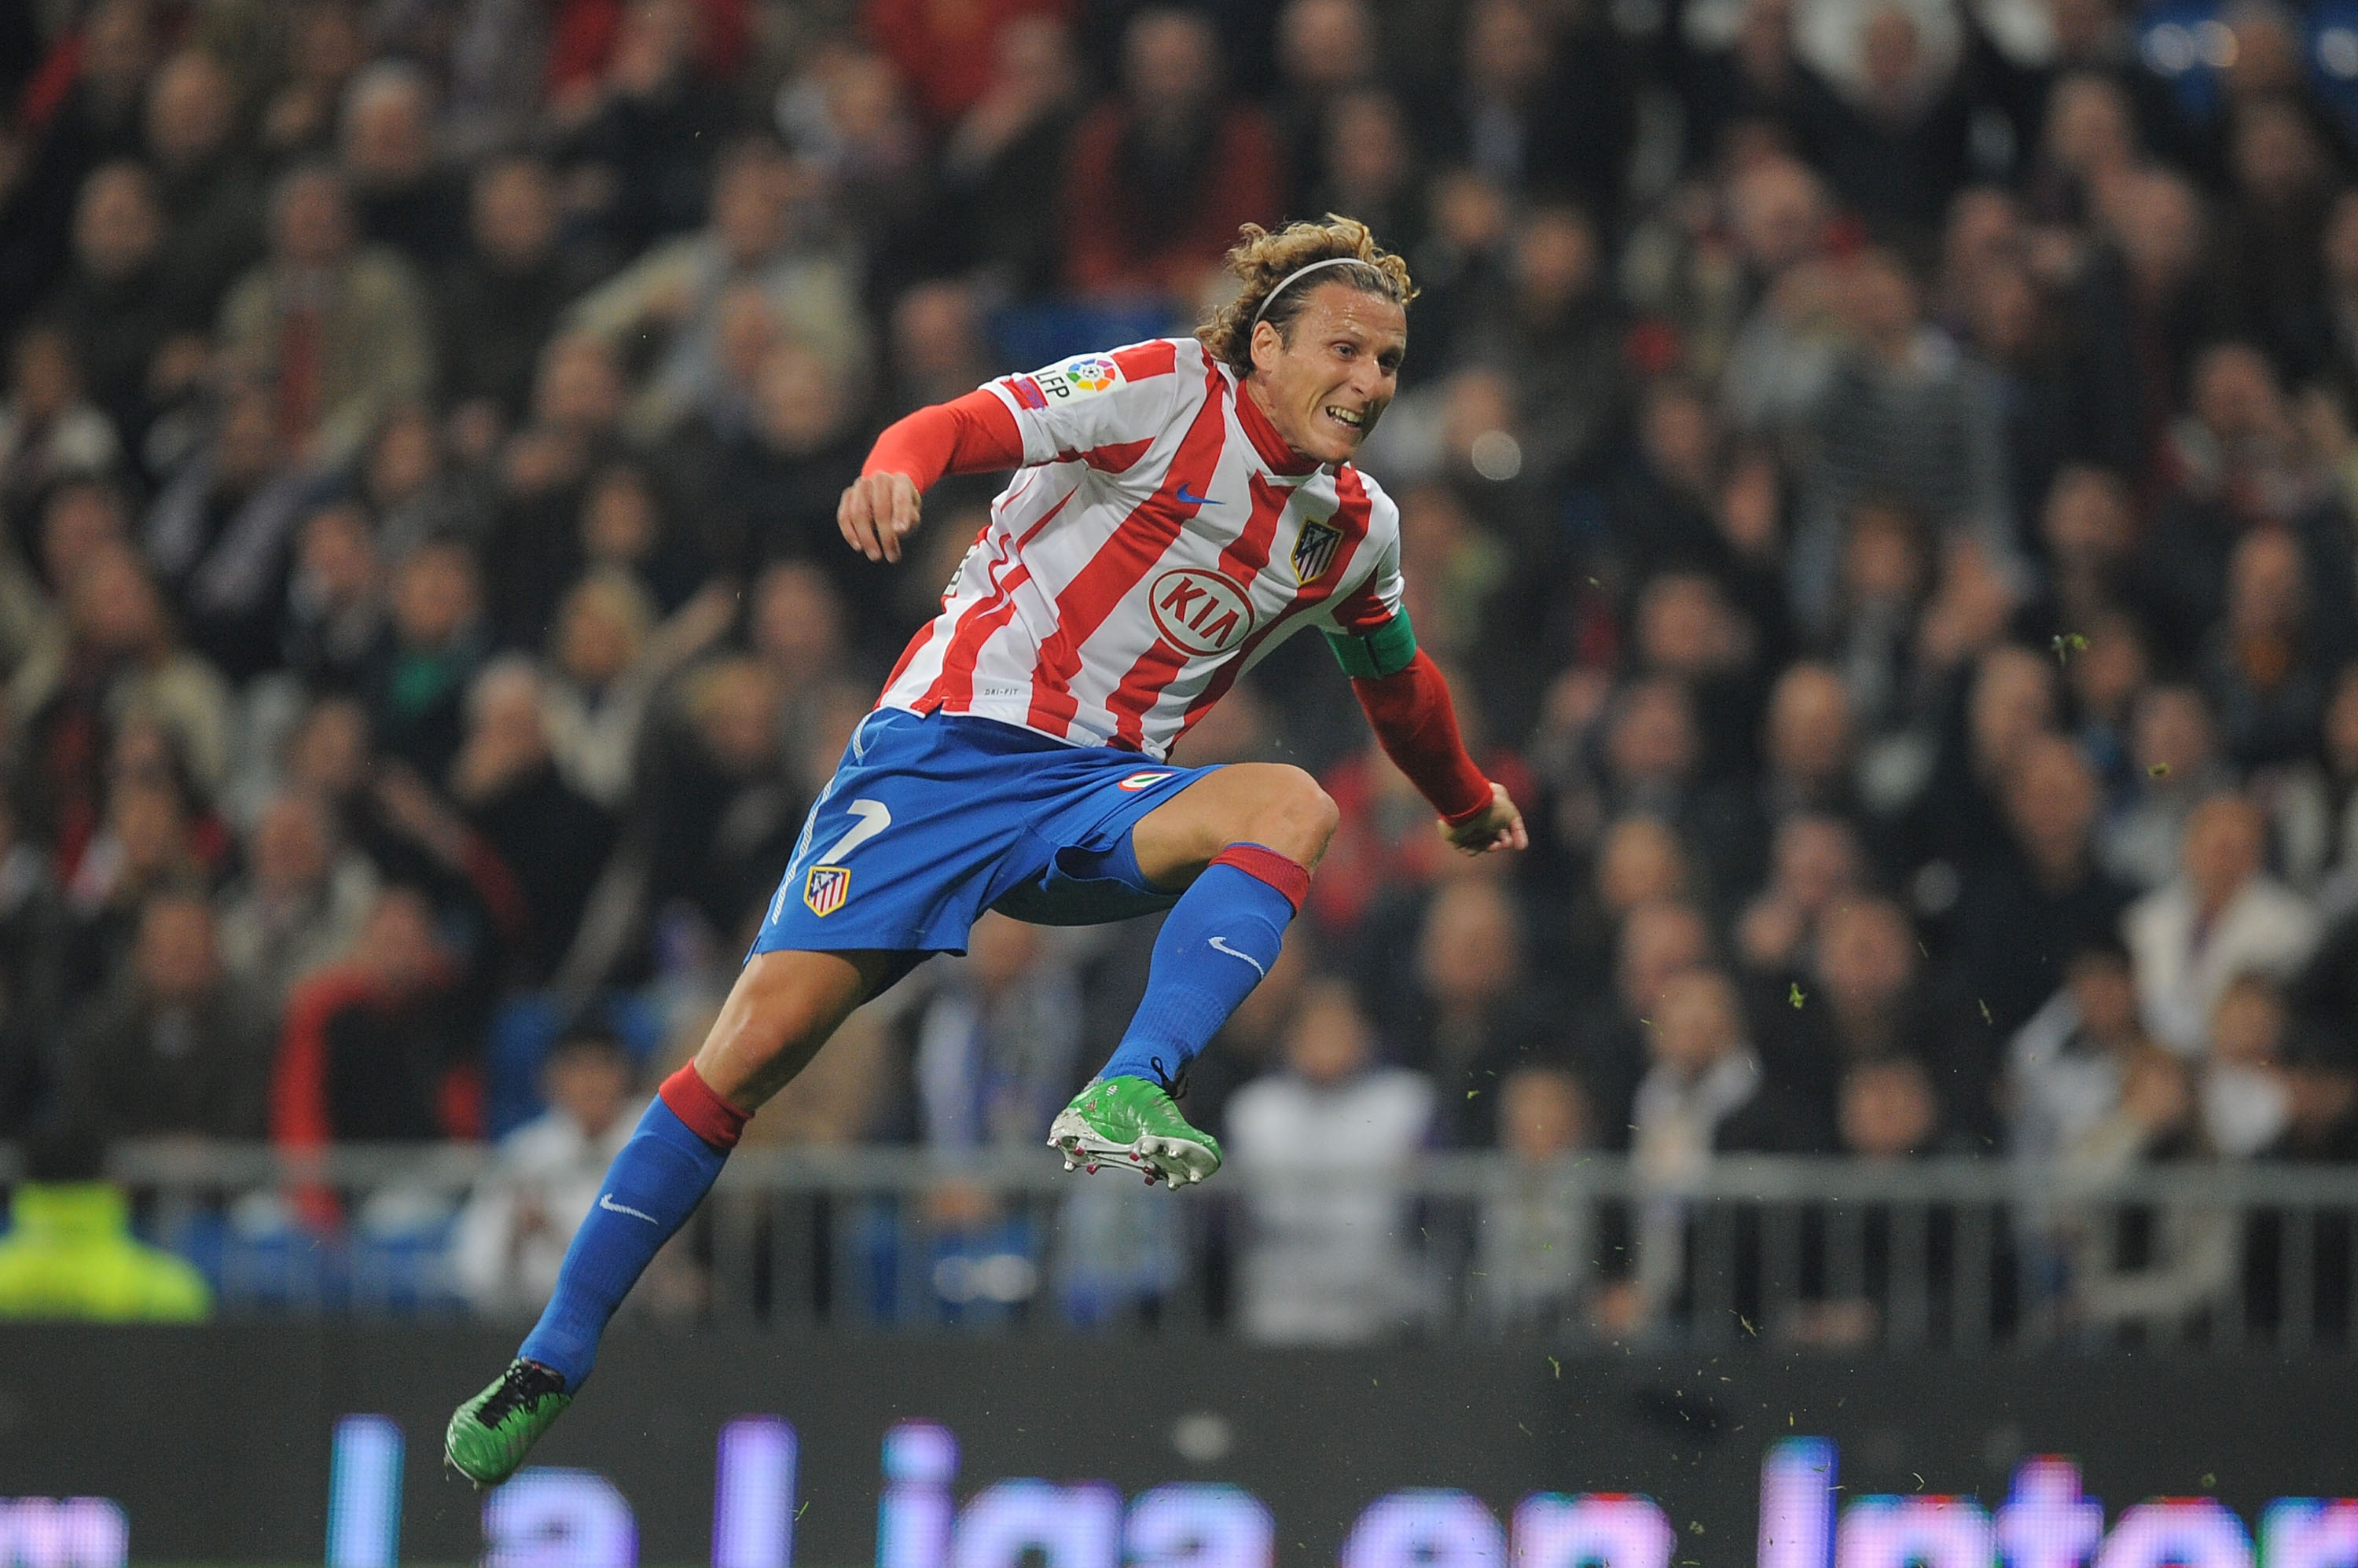 MADRID, SPAIN - JANUARY 13: Diego Forlan of Atletico Madrid in action during the Copa del Rey quarter final first leg match between Real Madrid and Atletico Madrid at Estadio Santiago Bernabeu on January 13, 2011 in Madrid, Spain.  (Photo by Denis Doyle/G